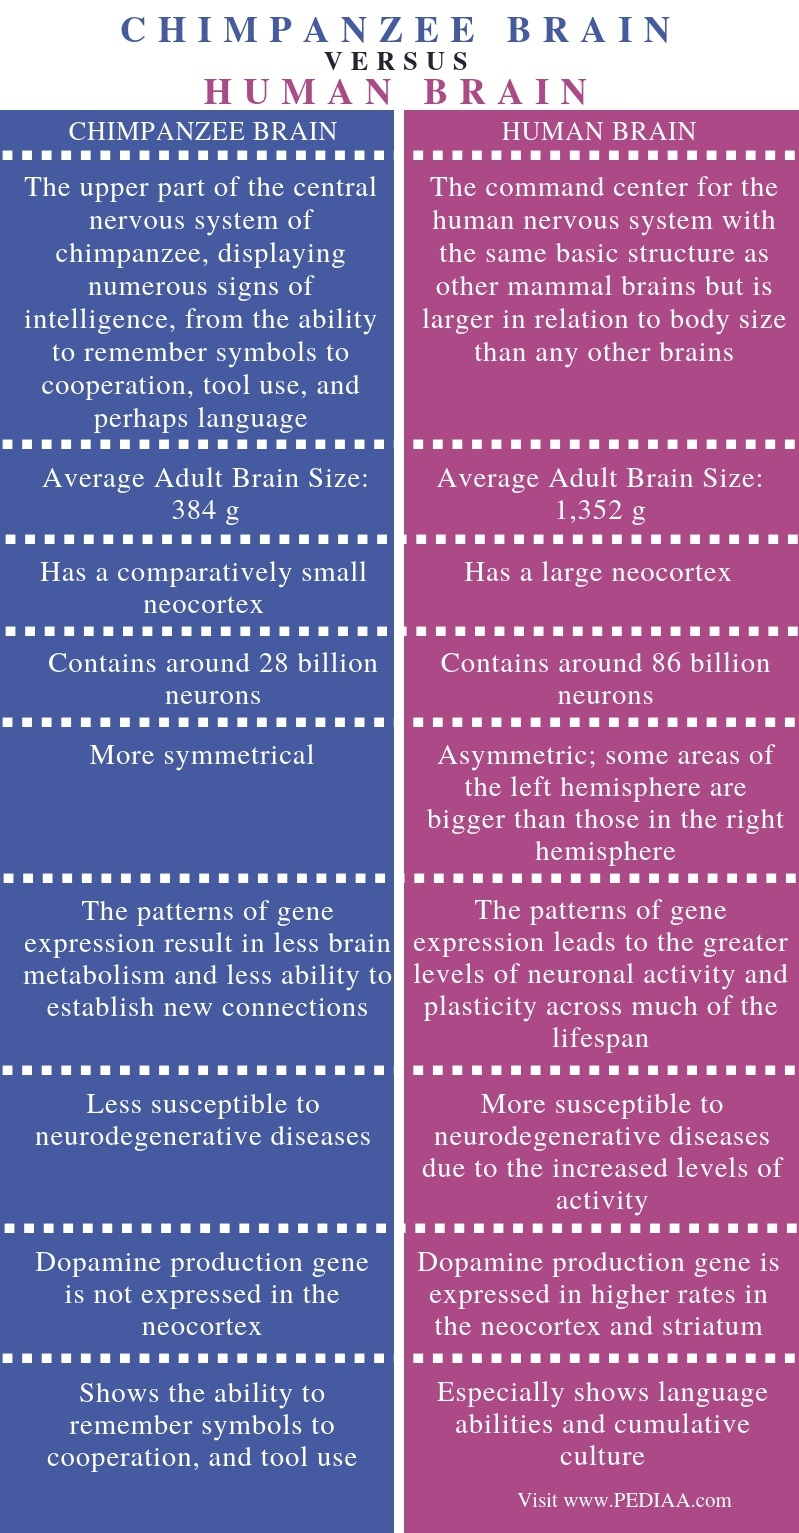 Difference Between Chimpanzee Brain and Human Brain - Comparison Summary